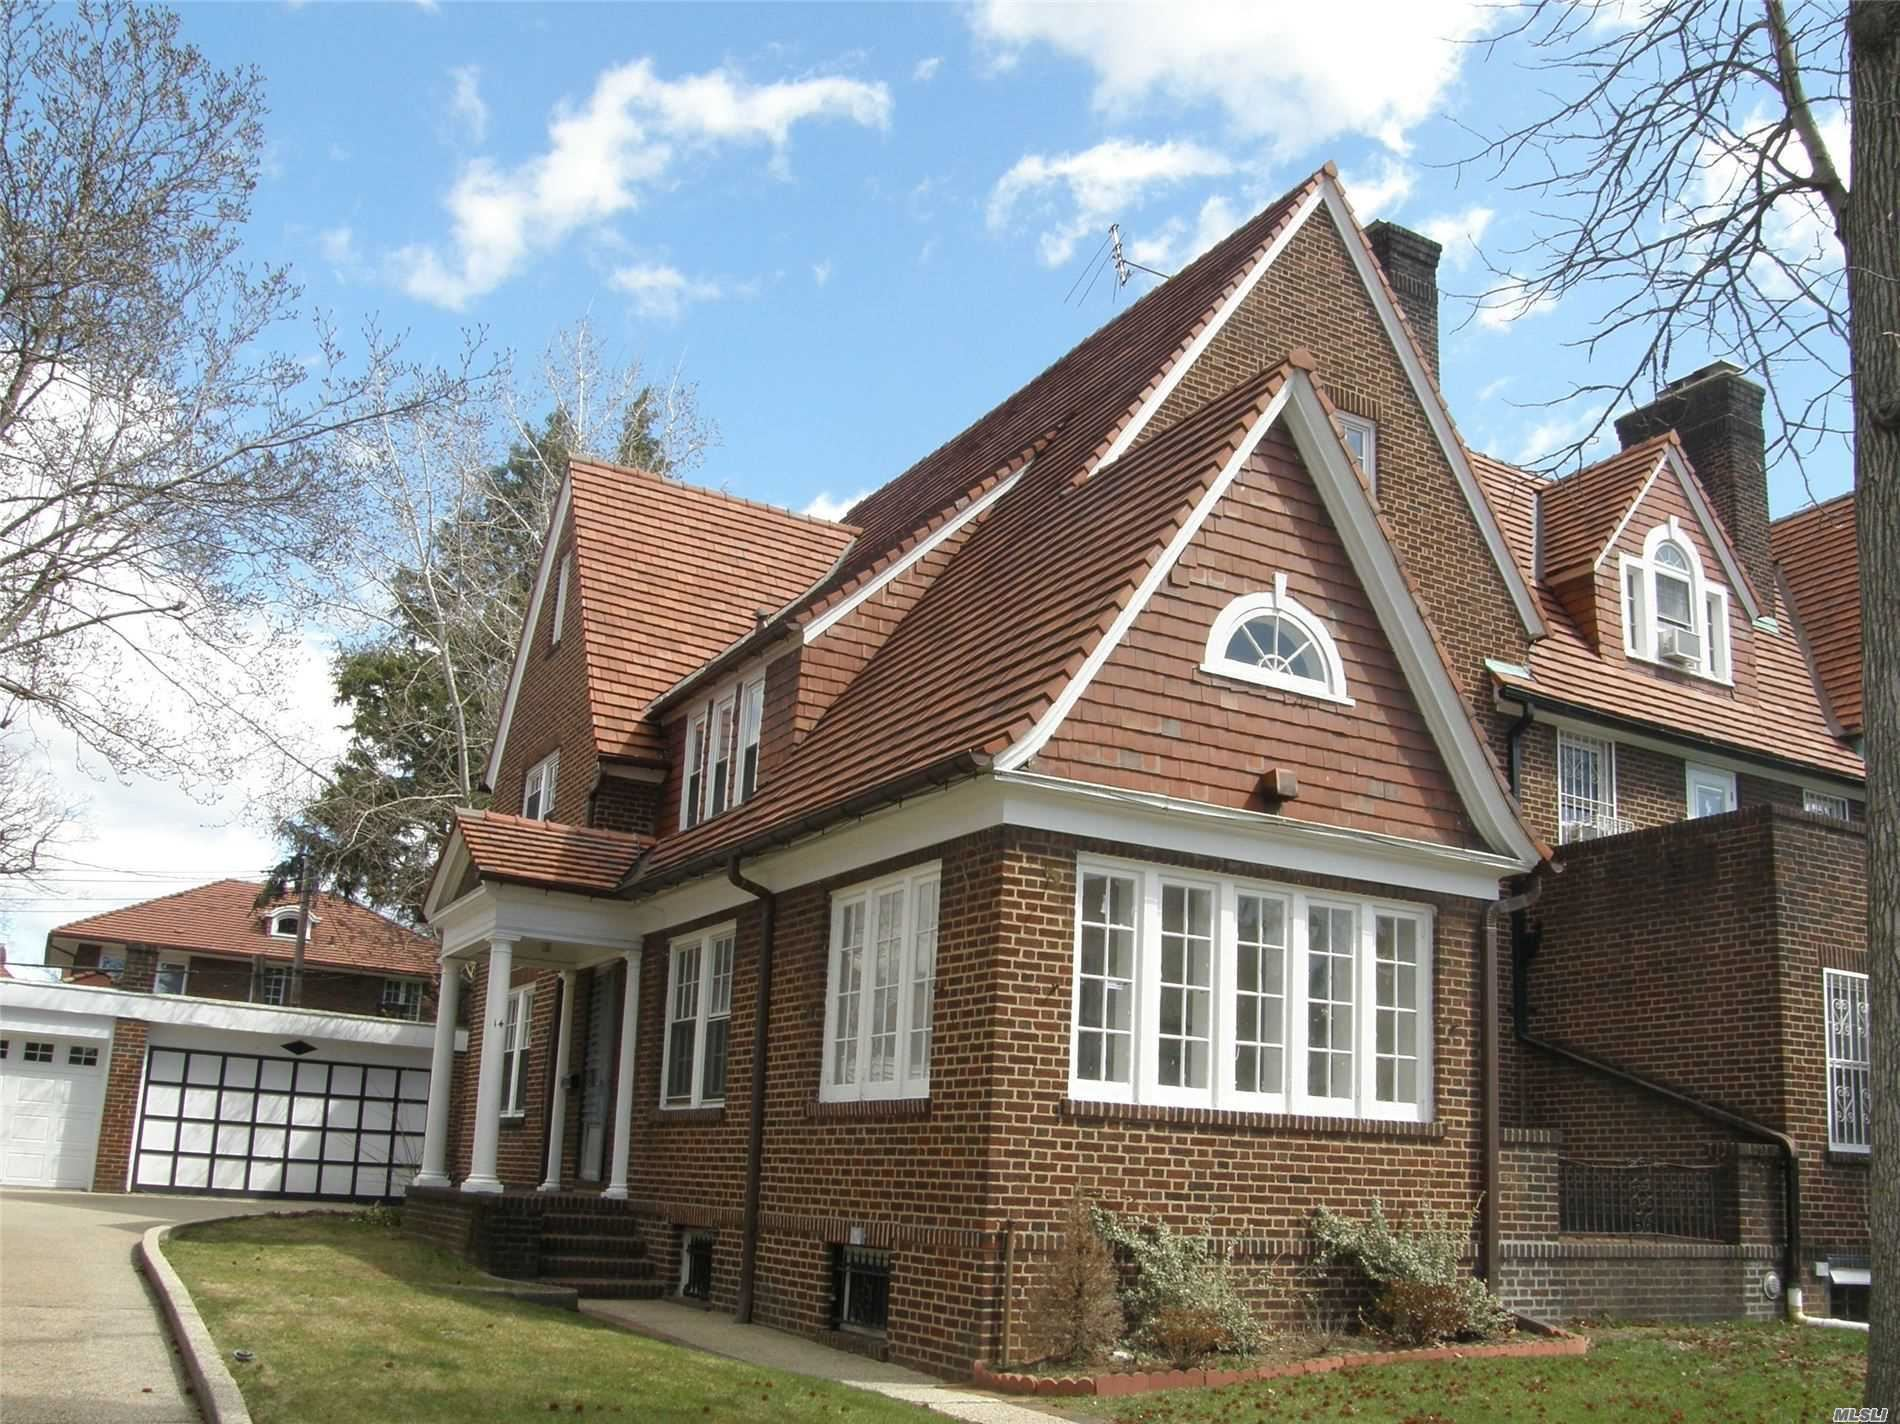 14 Groton St, Forest Hills, NY 11375 - MLS#: 3232314